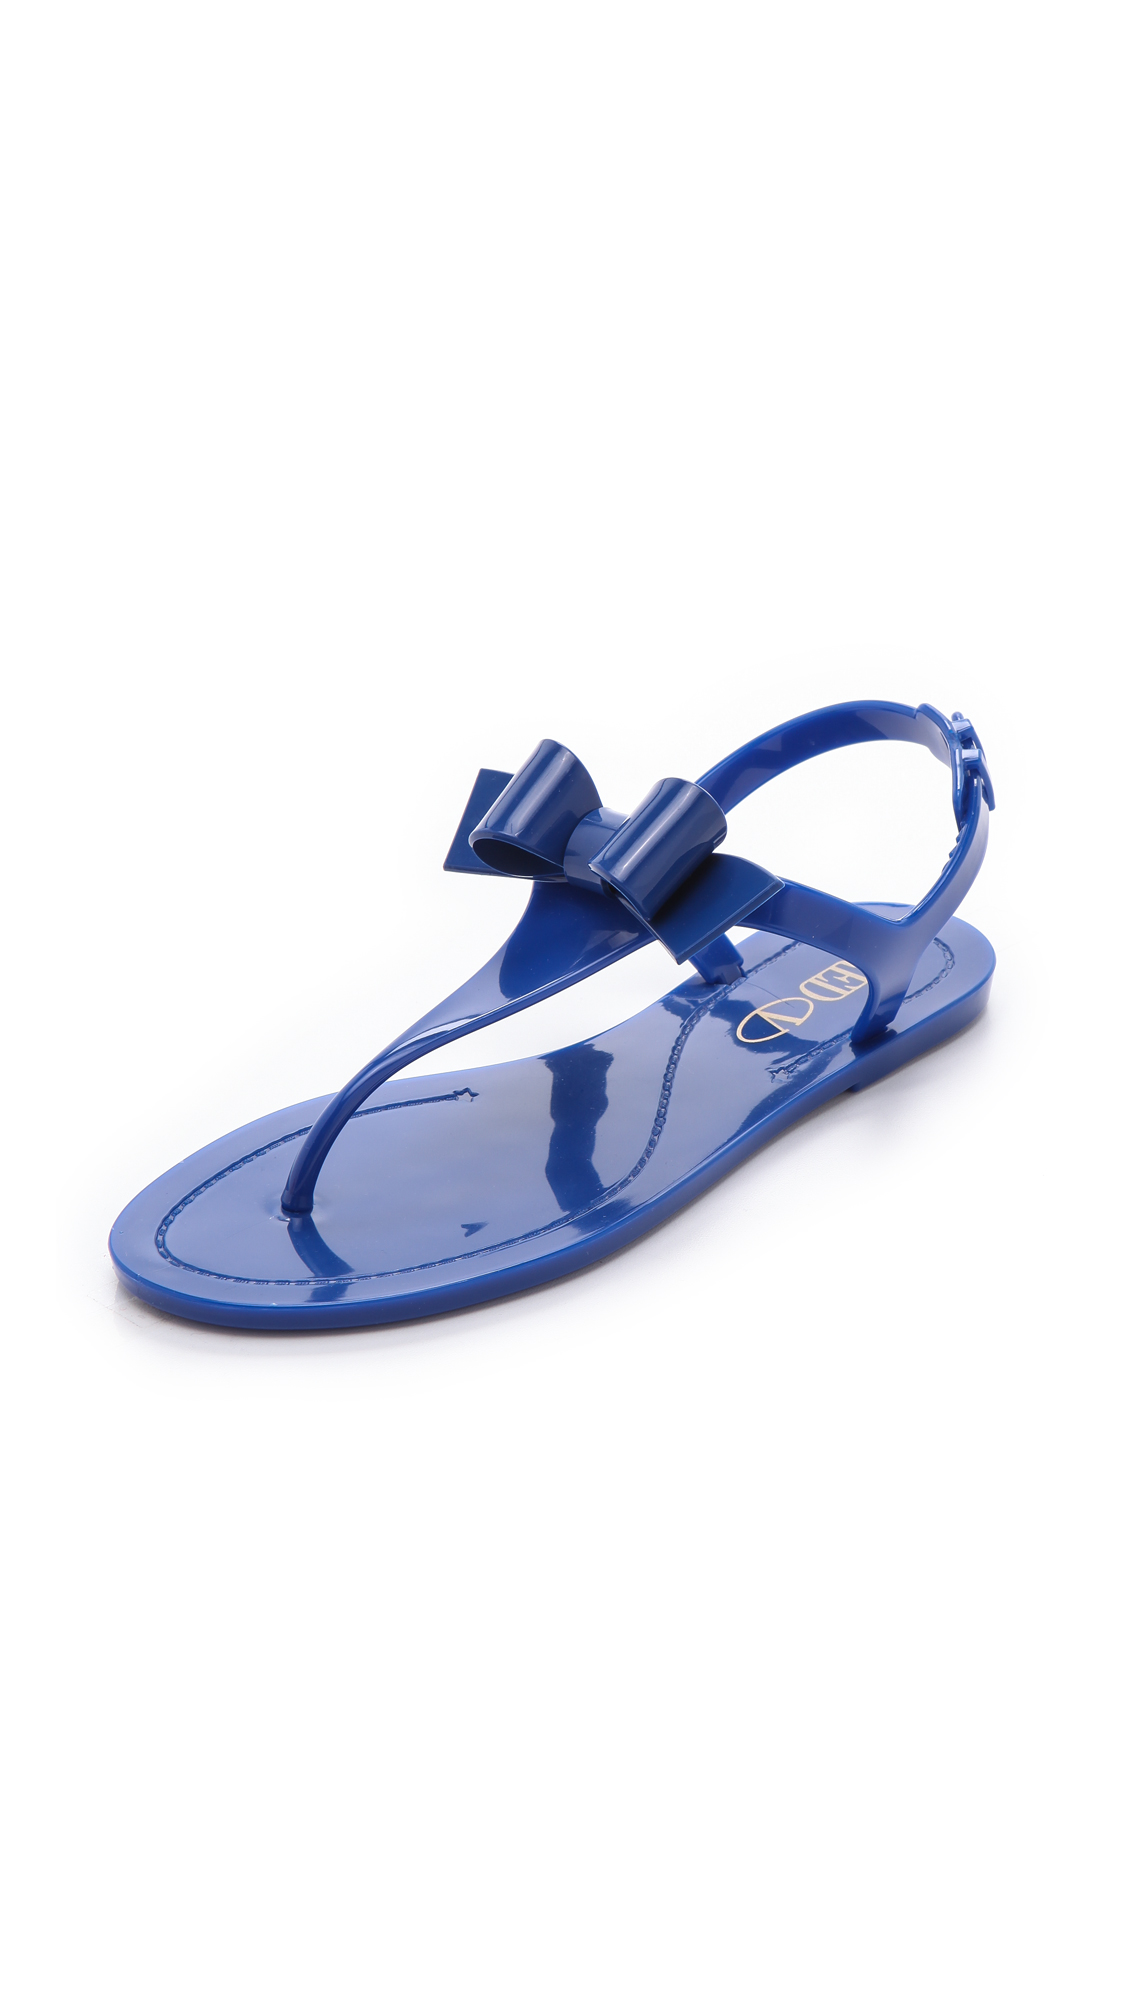 Shoes With Bows For Women